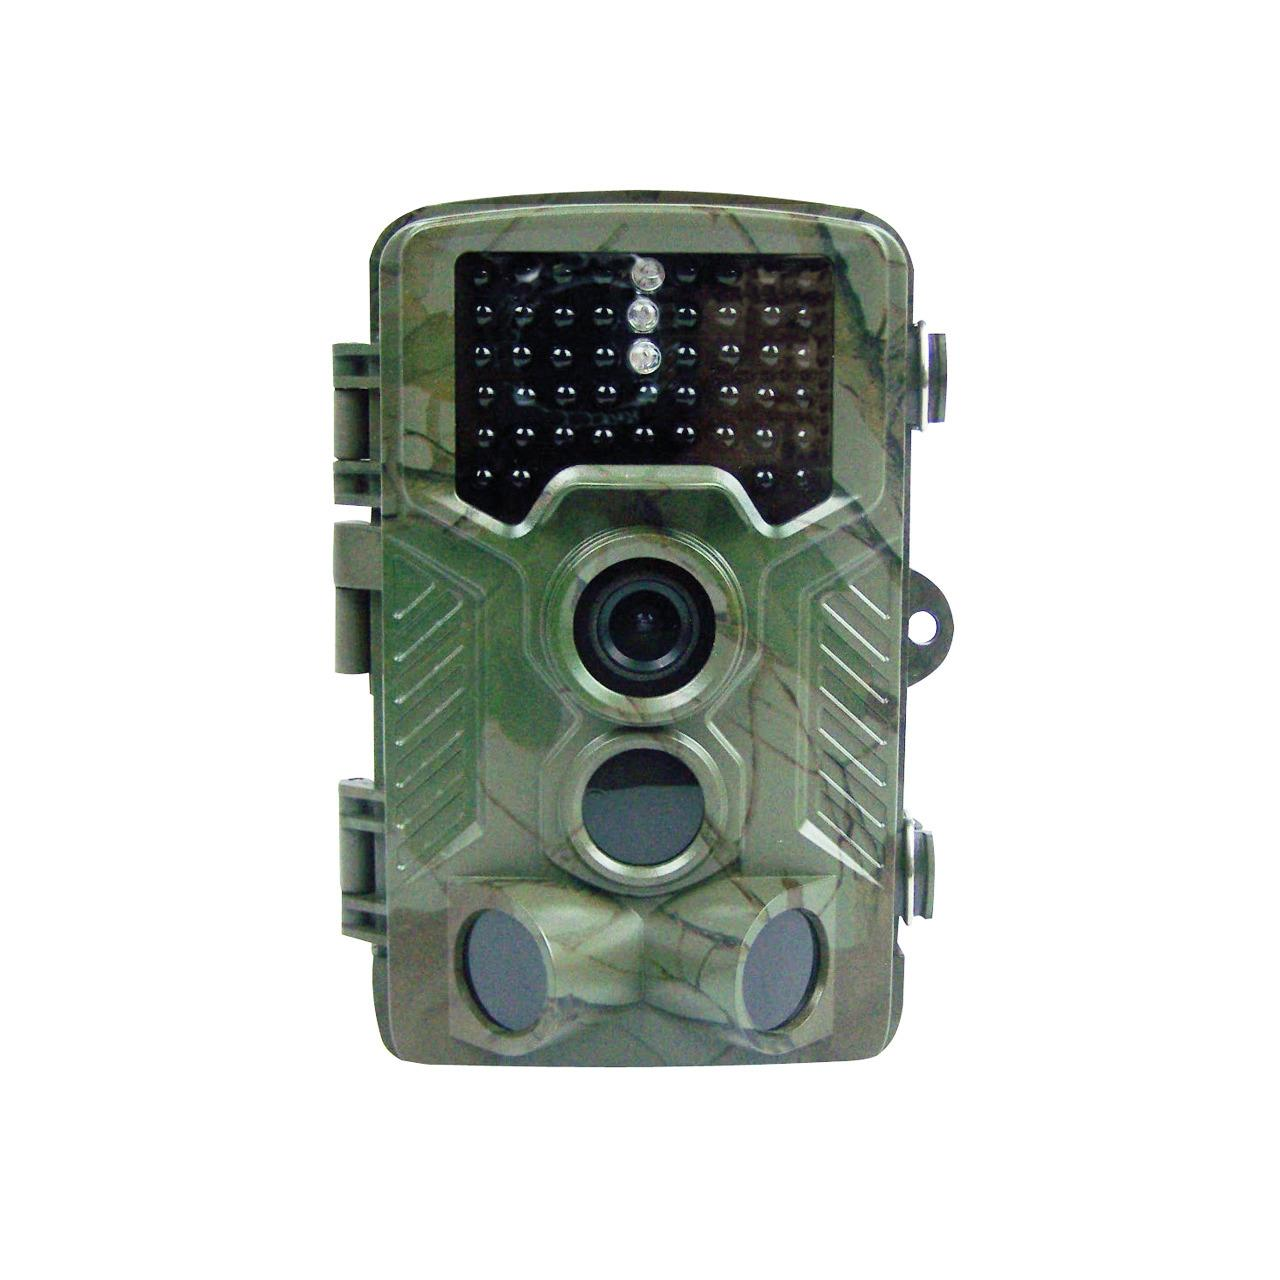 Berger & Schröter Full HD 16 MP Fotofalle/ Wildkamera Scouting Cam 31646 mit BLACK-LED's